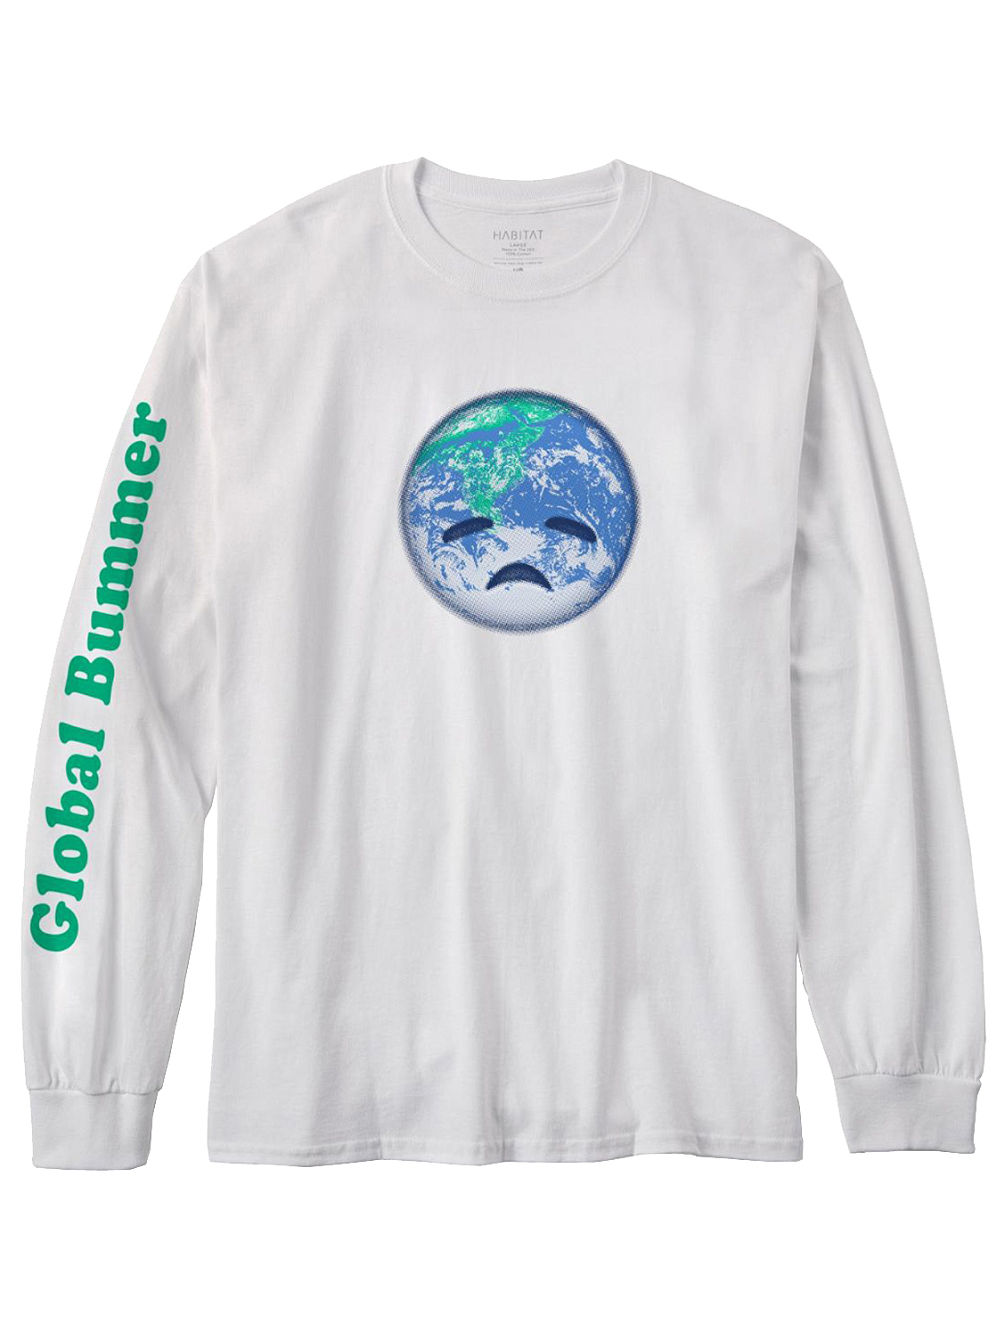 Global Bummer T-Shirt LS